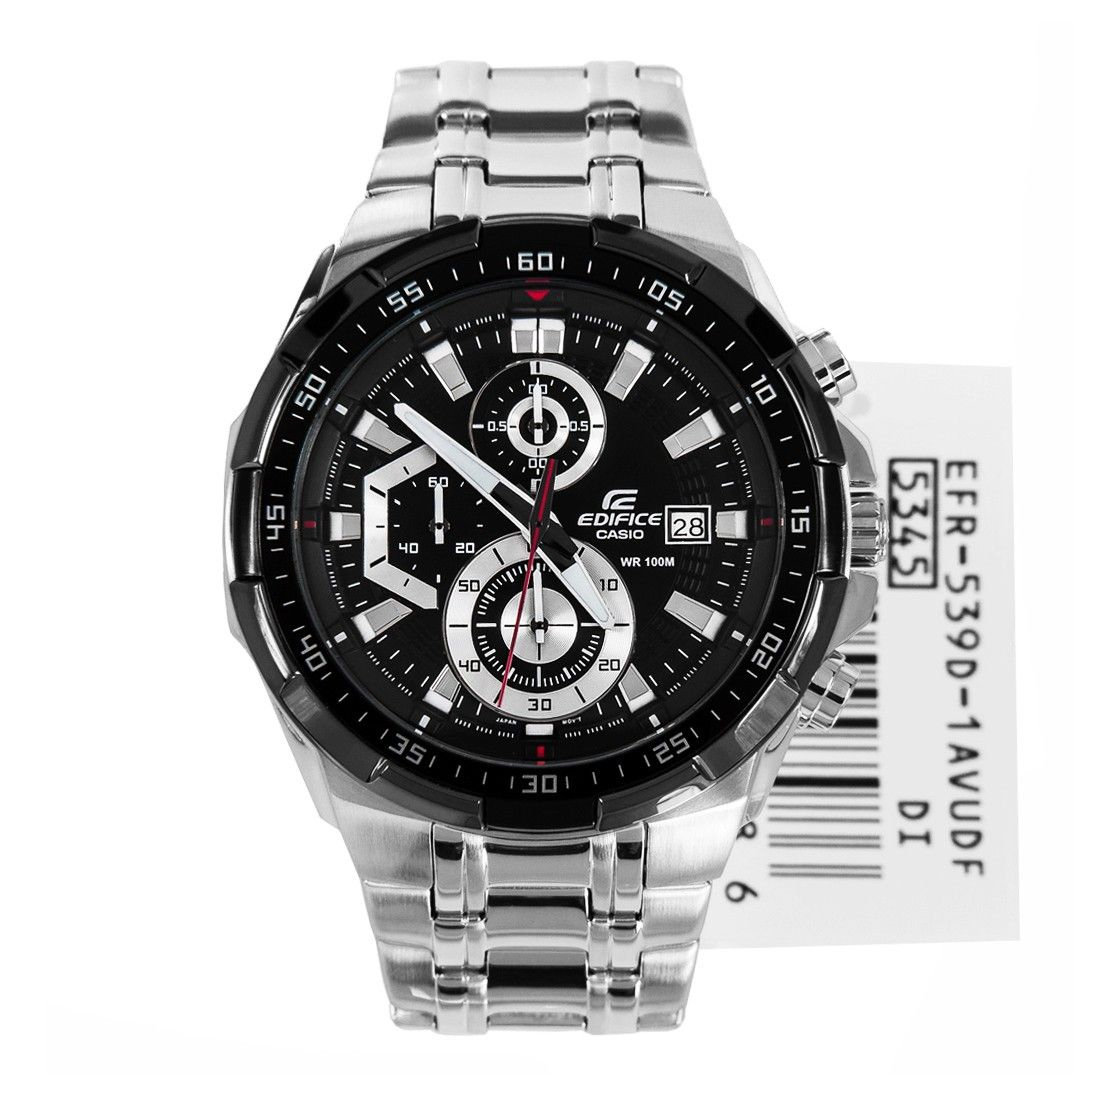 Casio Edifice Sports Watch Efr 539d 1av Efr539d Stuff To Buy Ef 543d Silver Sport Watches